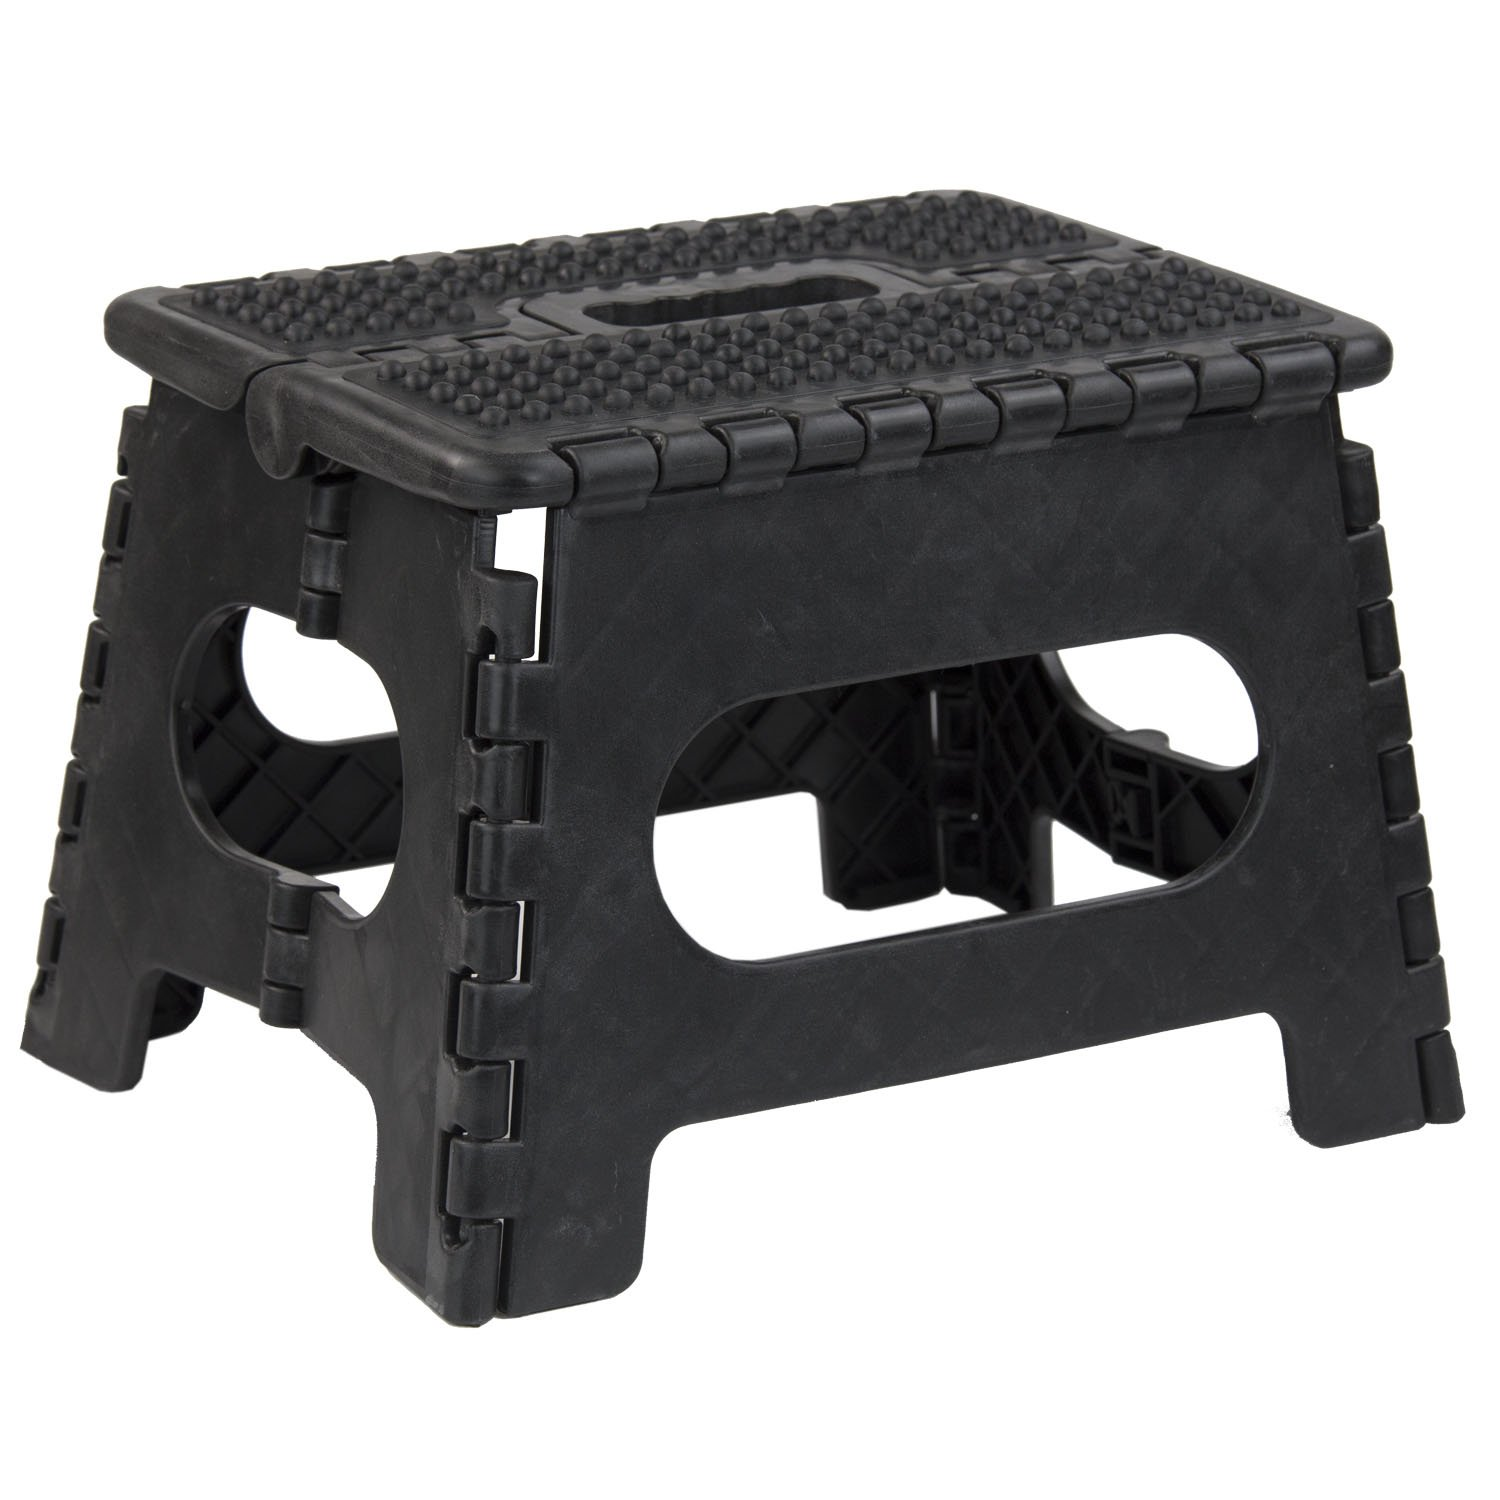 Home Basics Folding Stool with Non Slip Grip and Carrying Handle (Medium, Black)